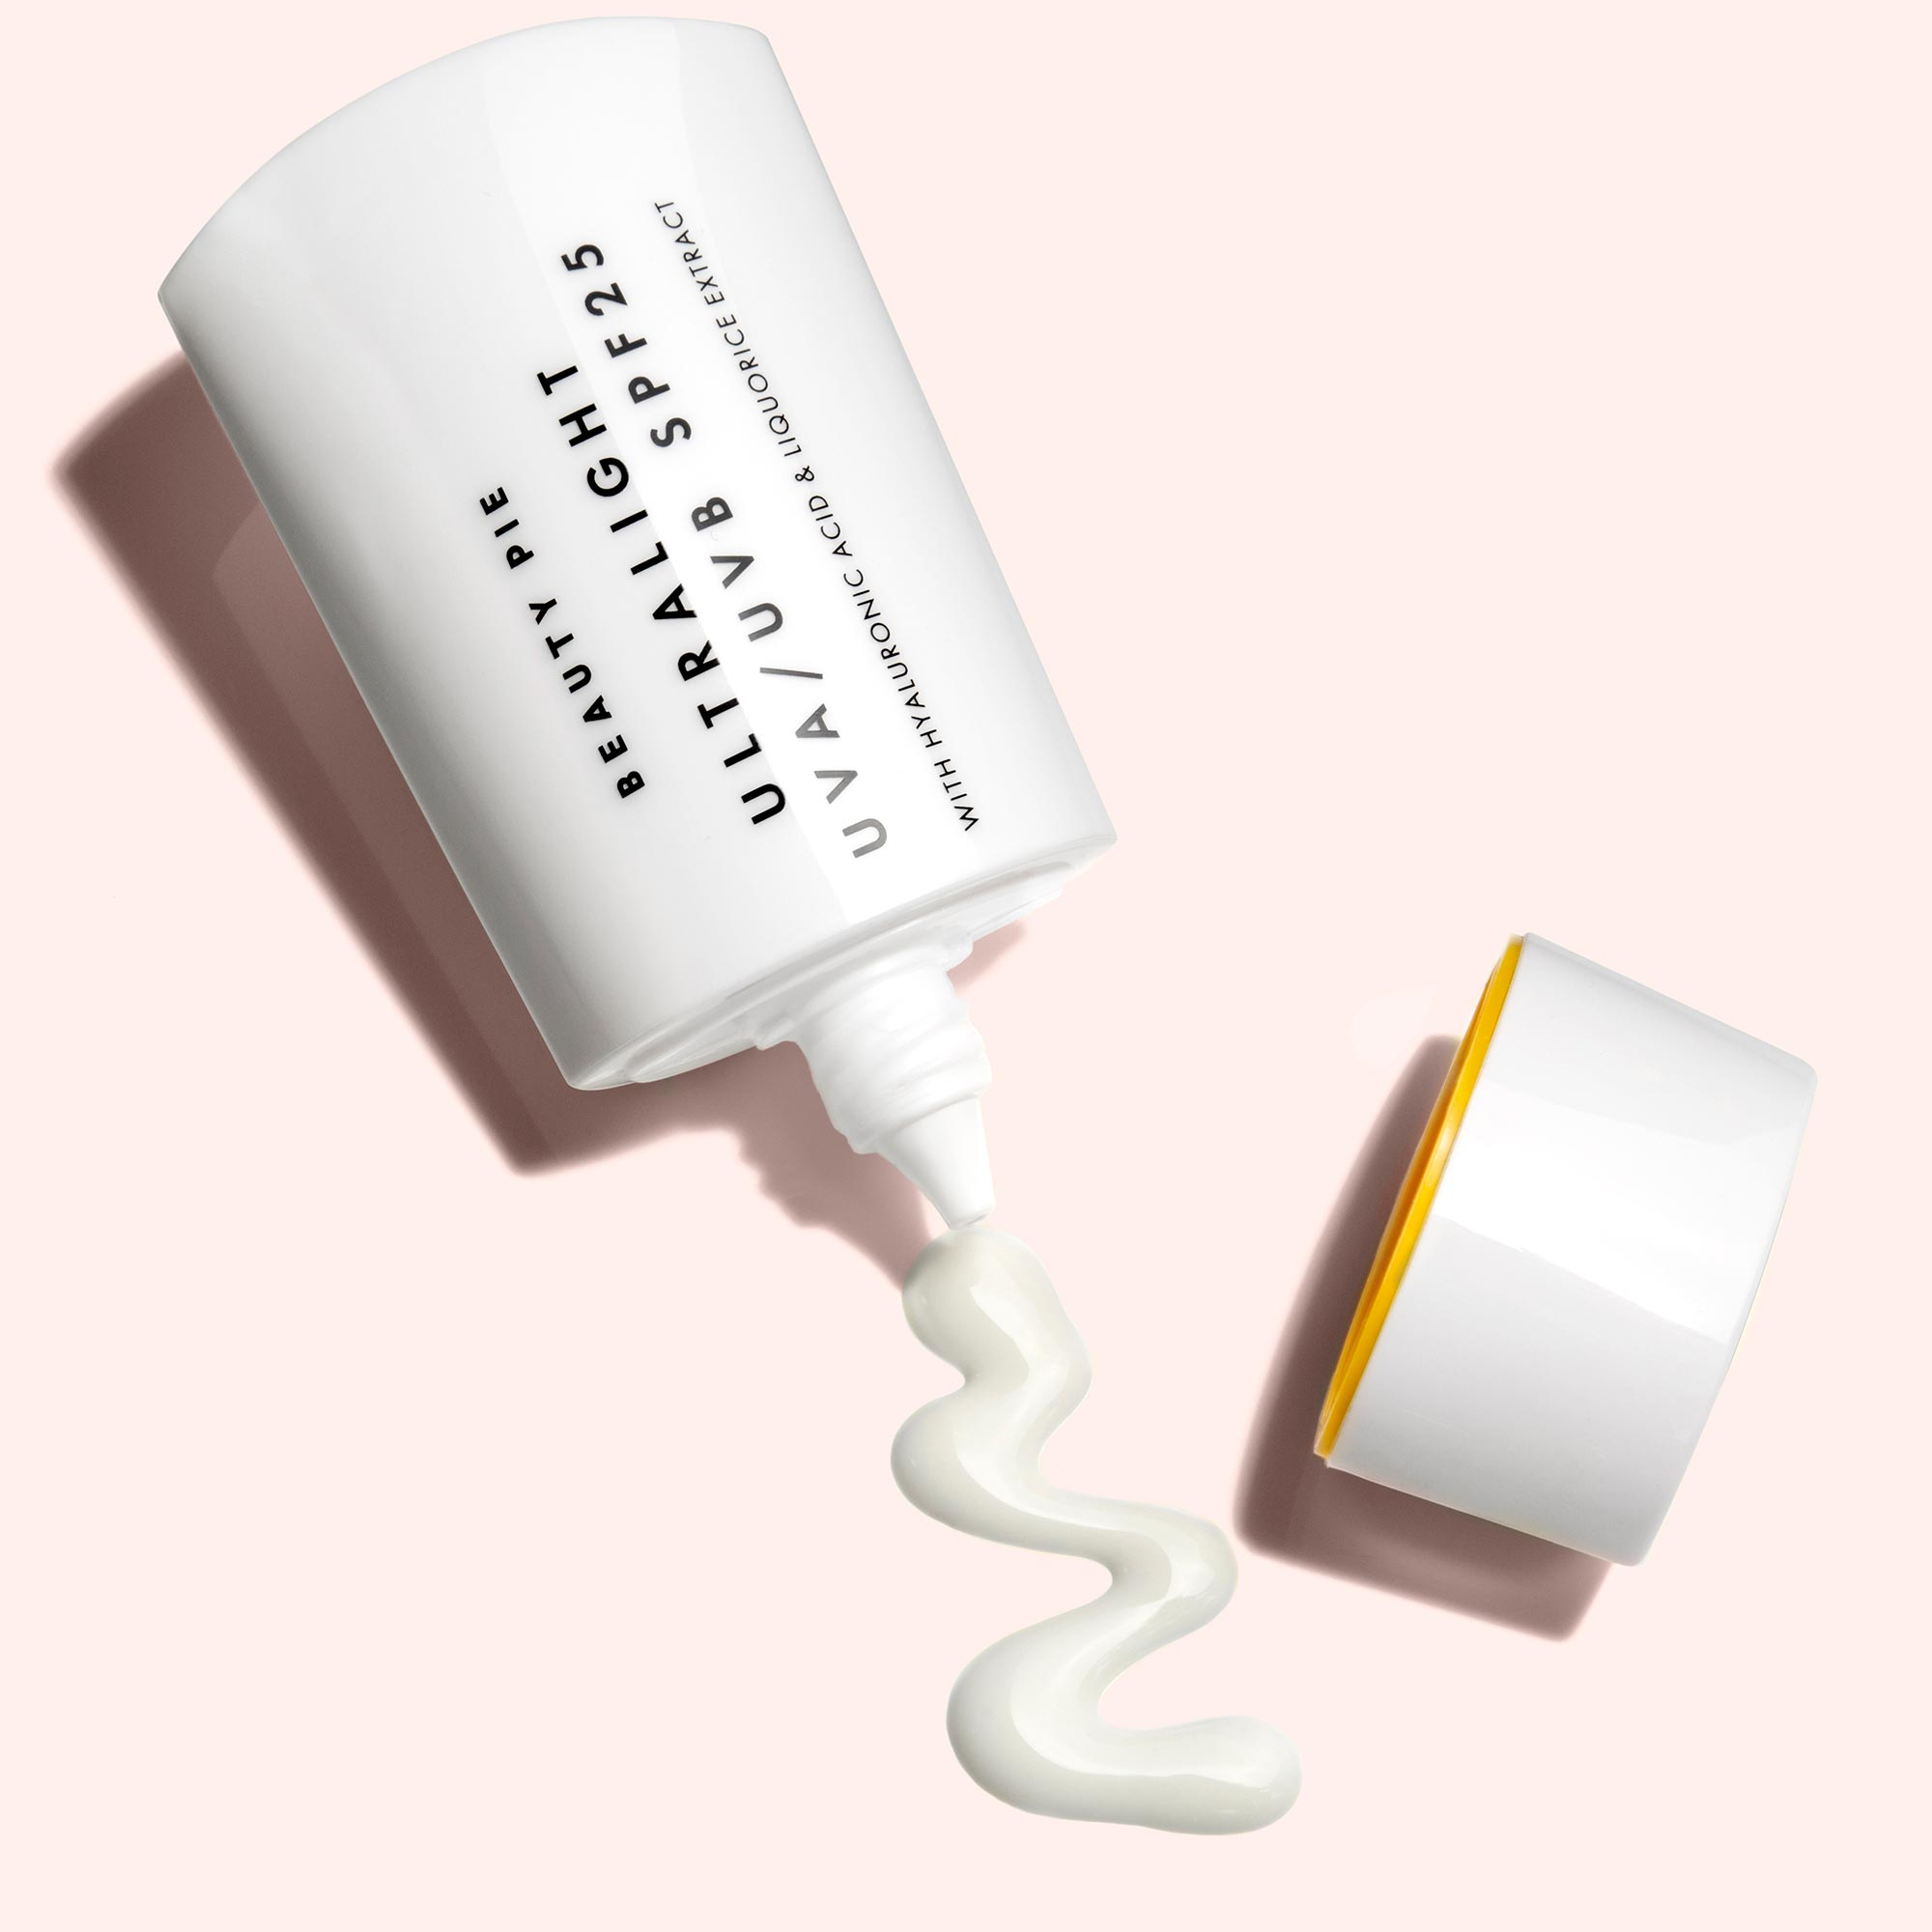 products that pass the SPF test